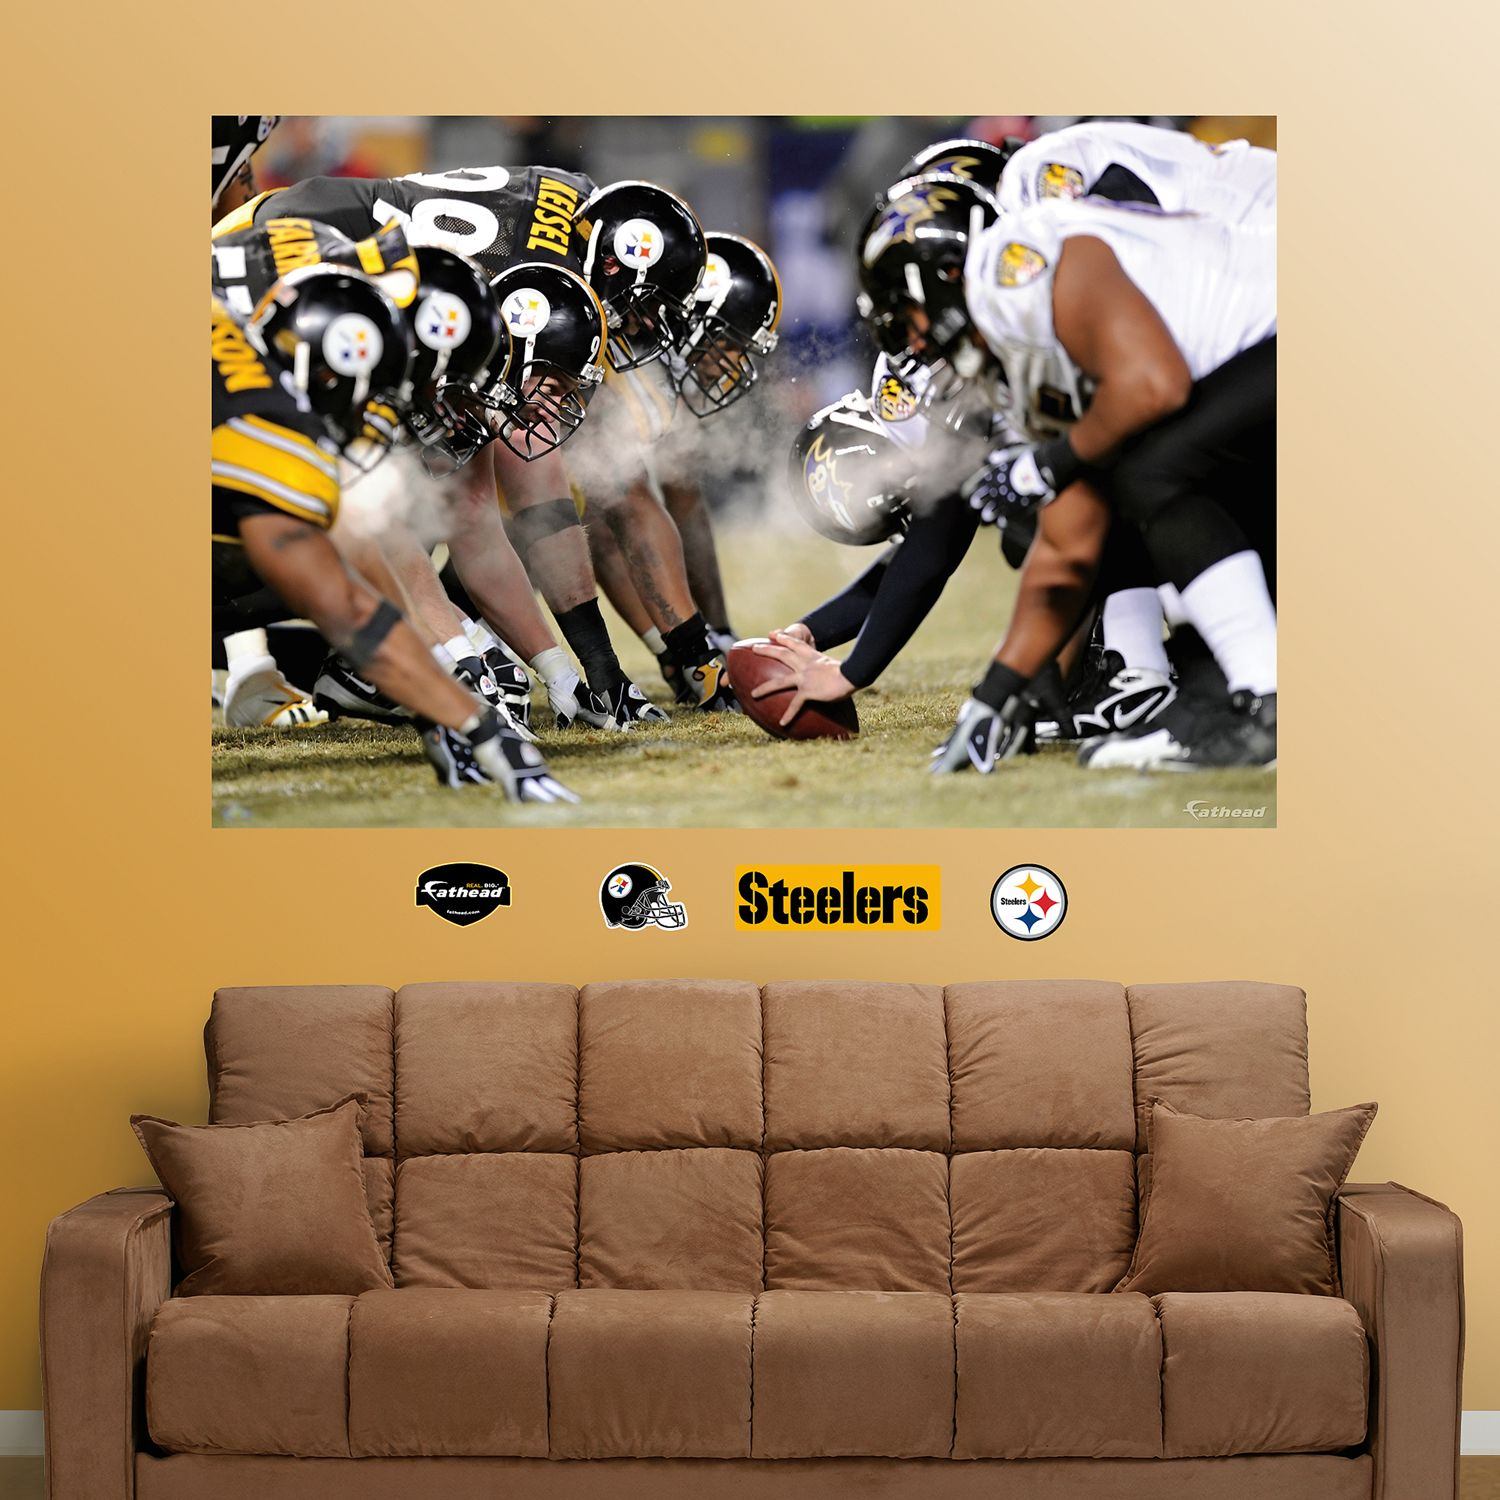 & Fathead Pittsburgh Steelers Mural Wall Decals